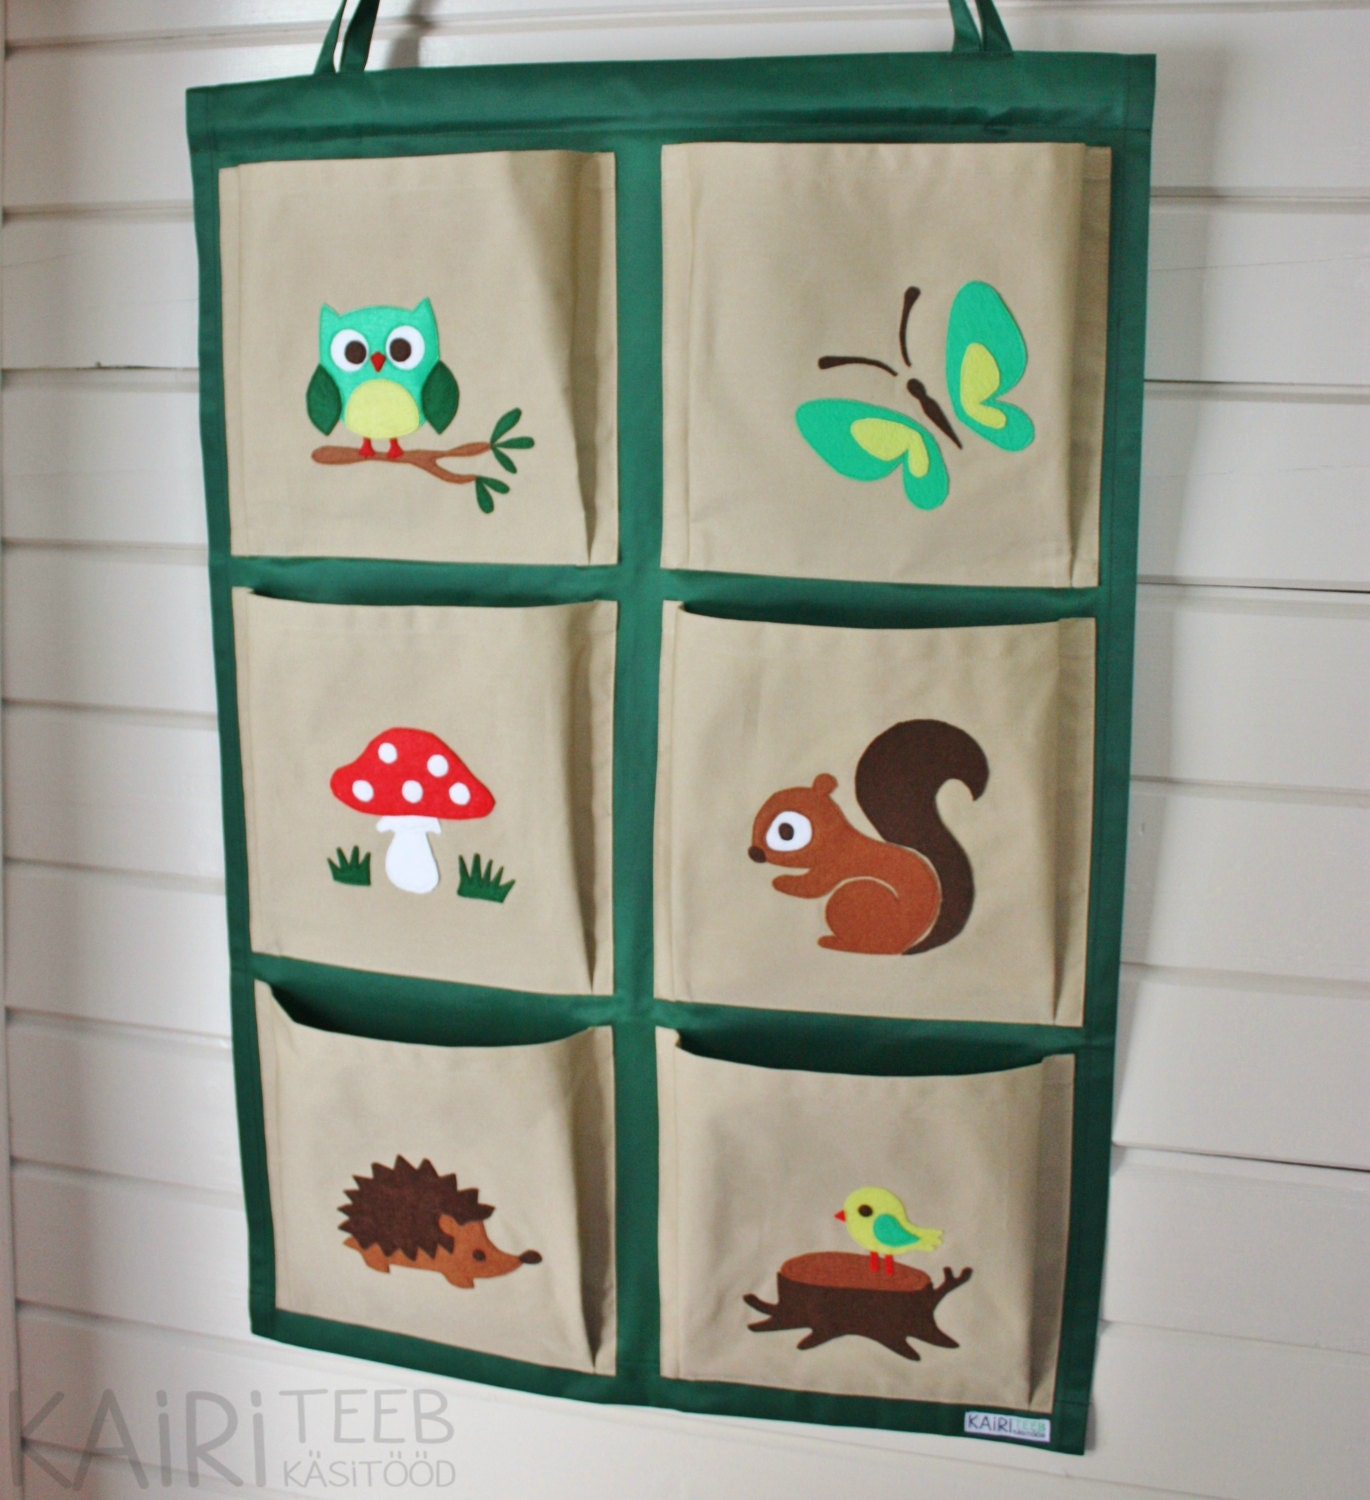 Kids Organizer Hanging Wall Fabric Pocket Storage For Books